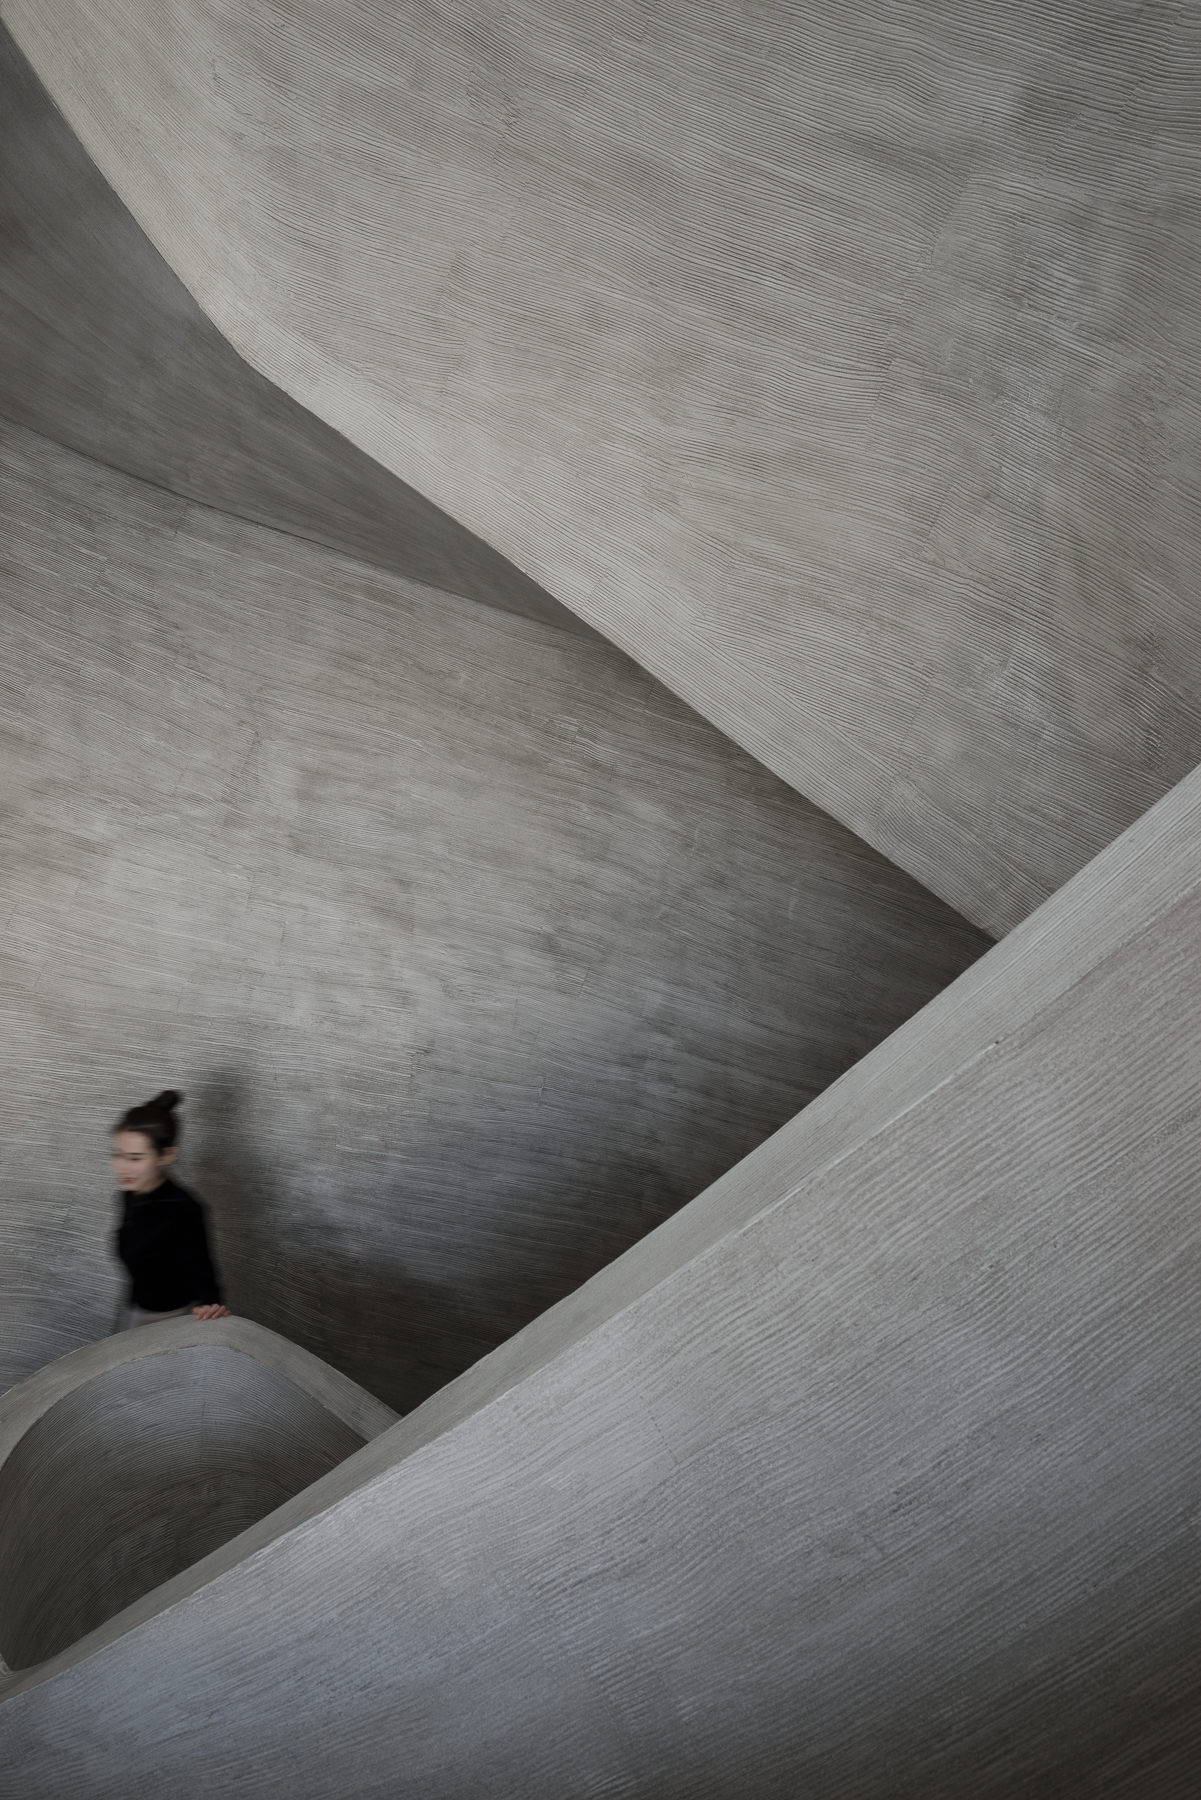 Spiral staircase1 A. GUANG